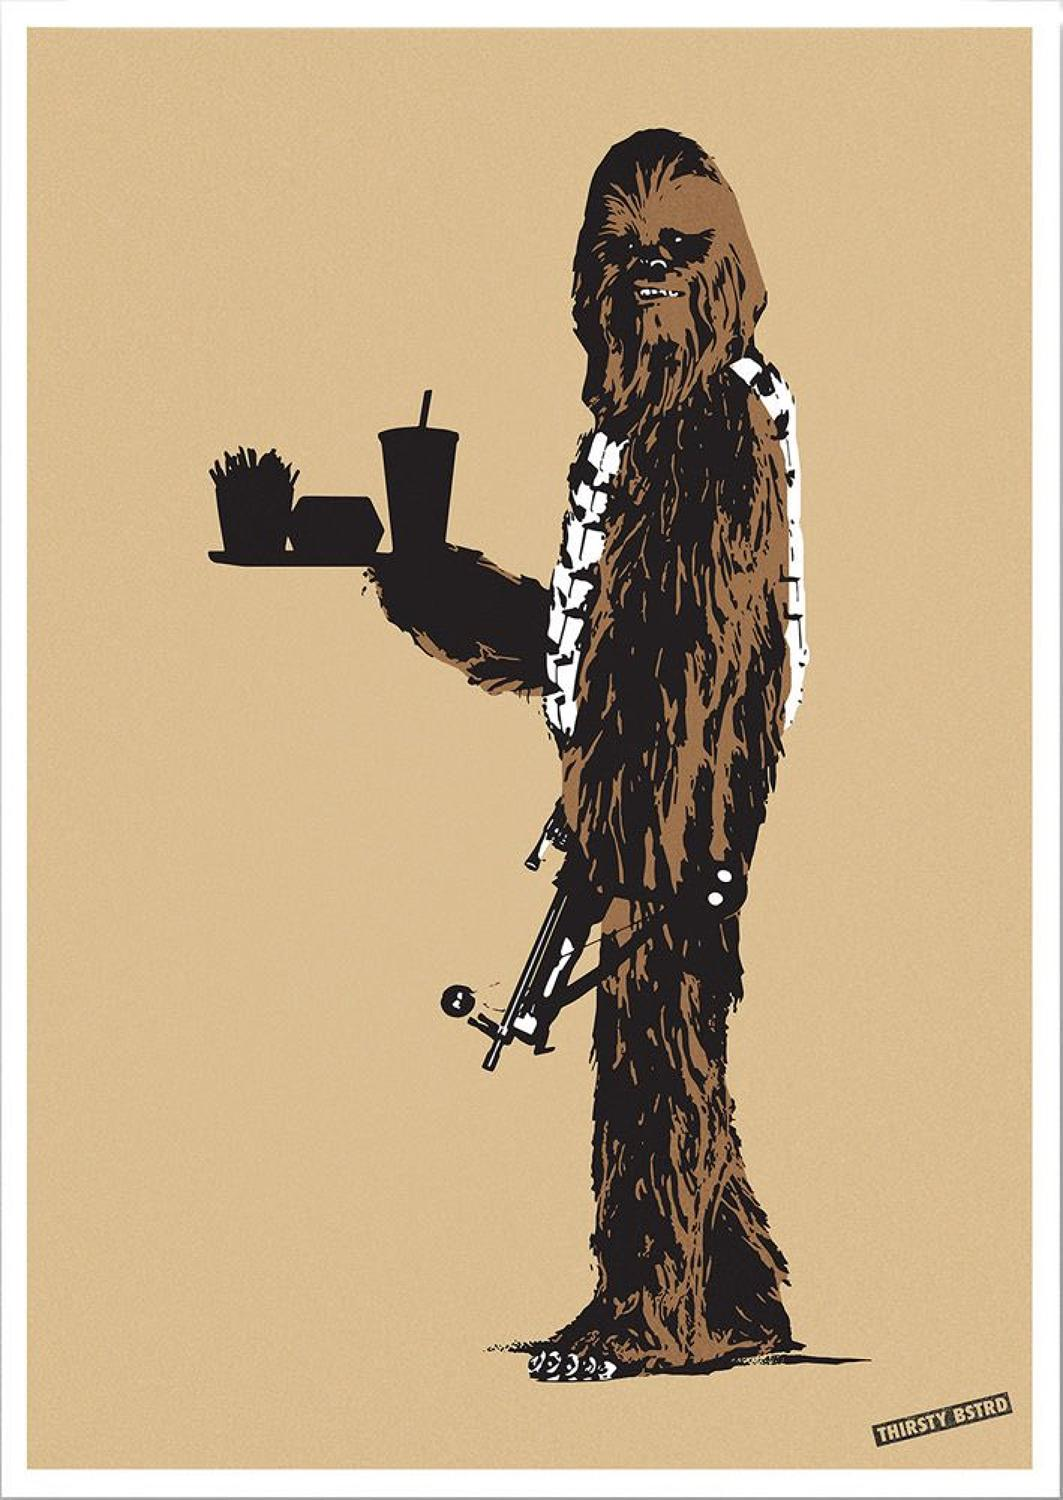 Chewbacca Fast Food Screen Print Thirsty Bstrd